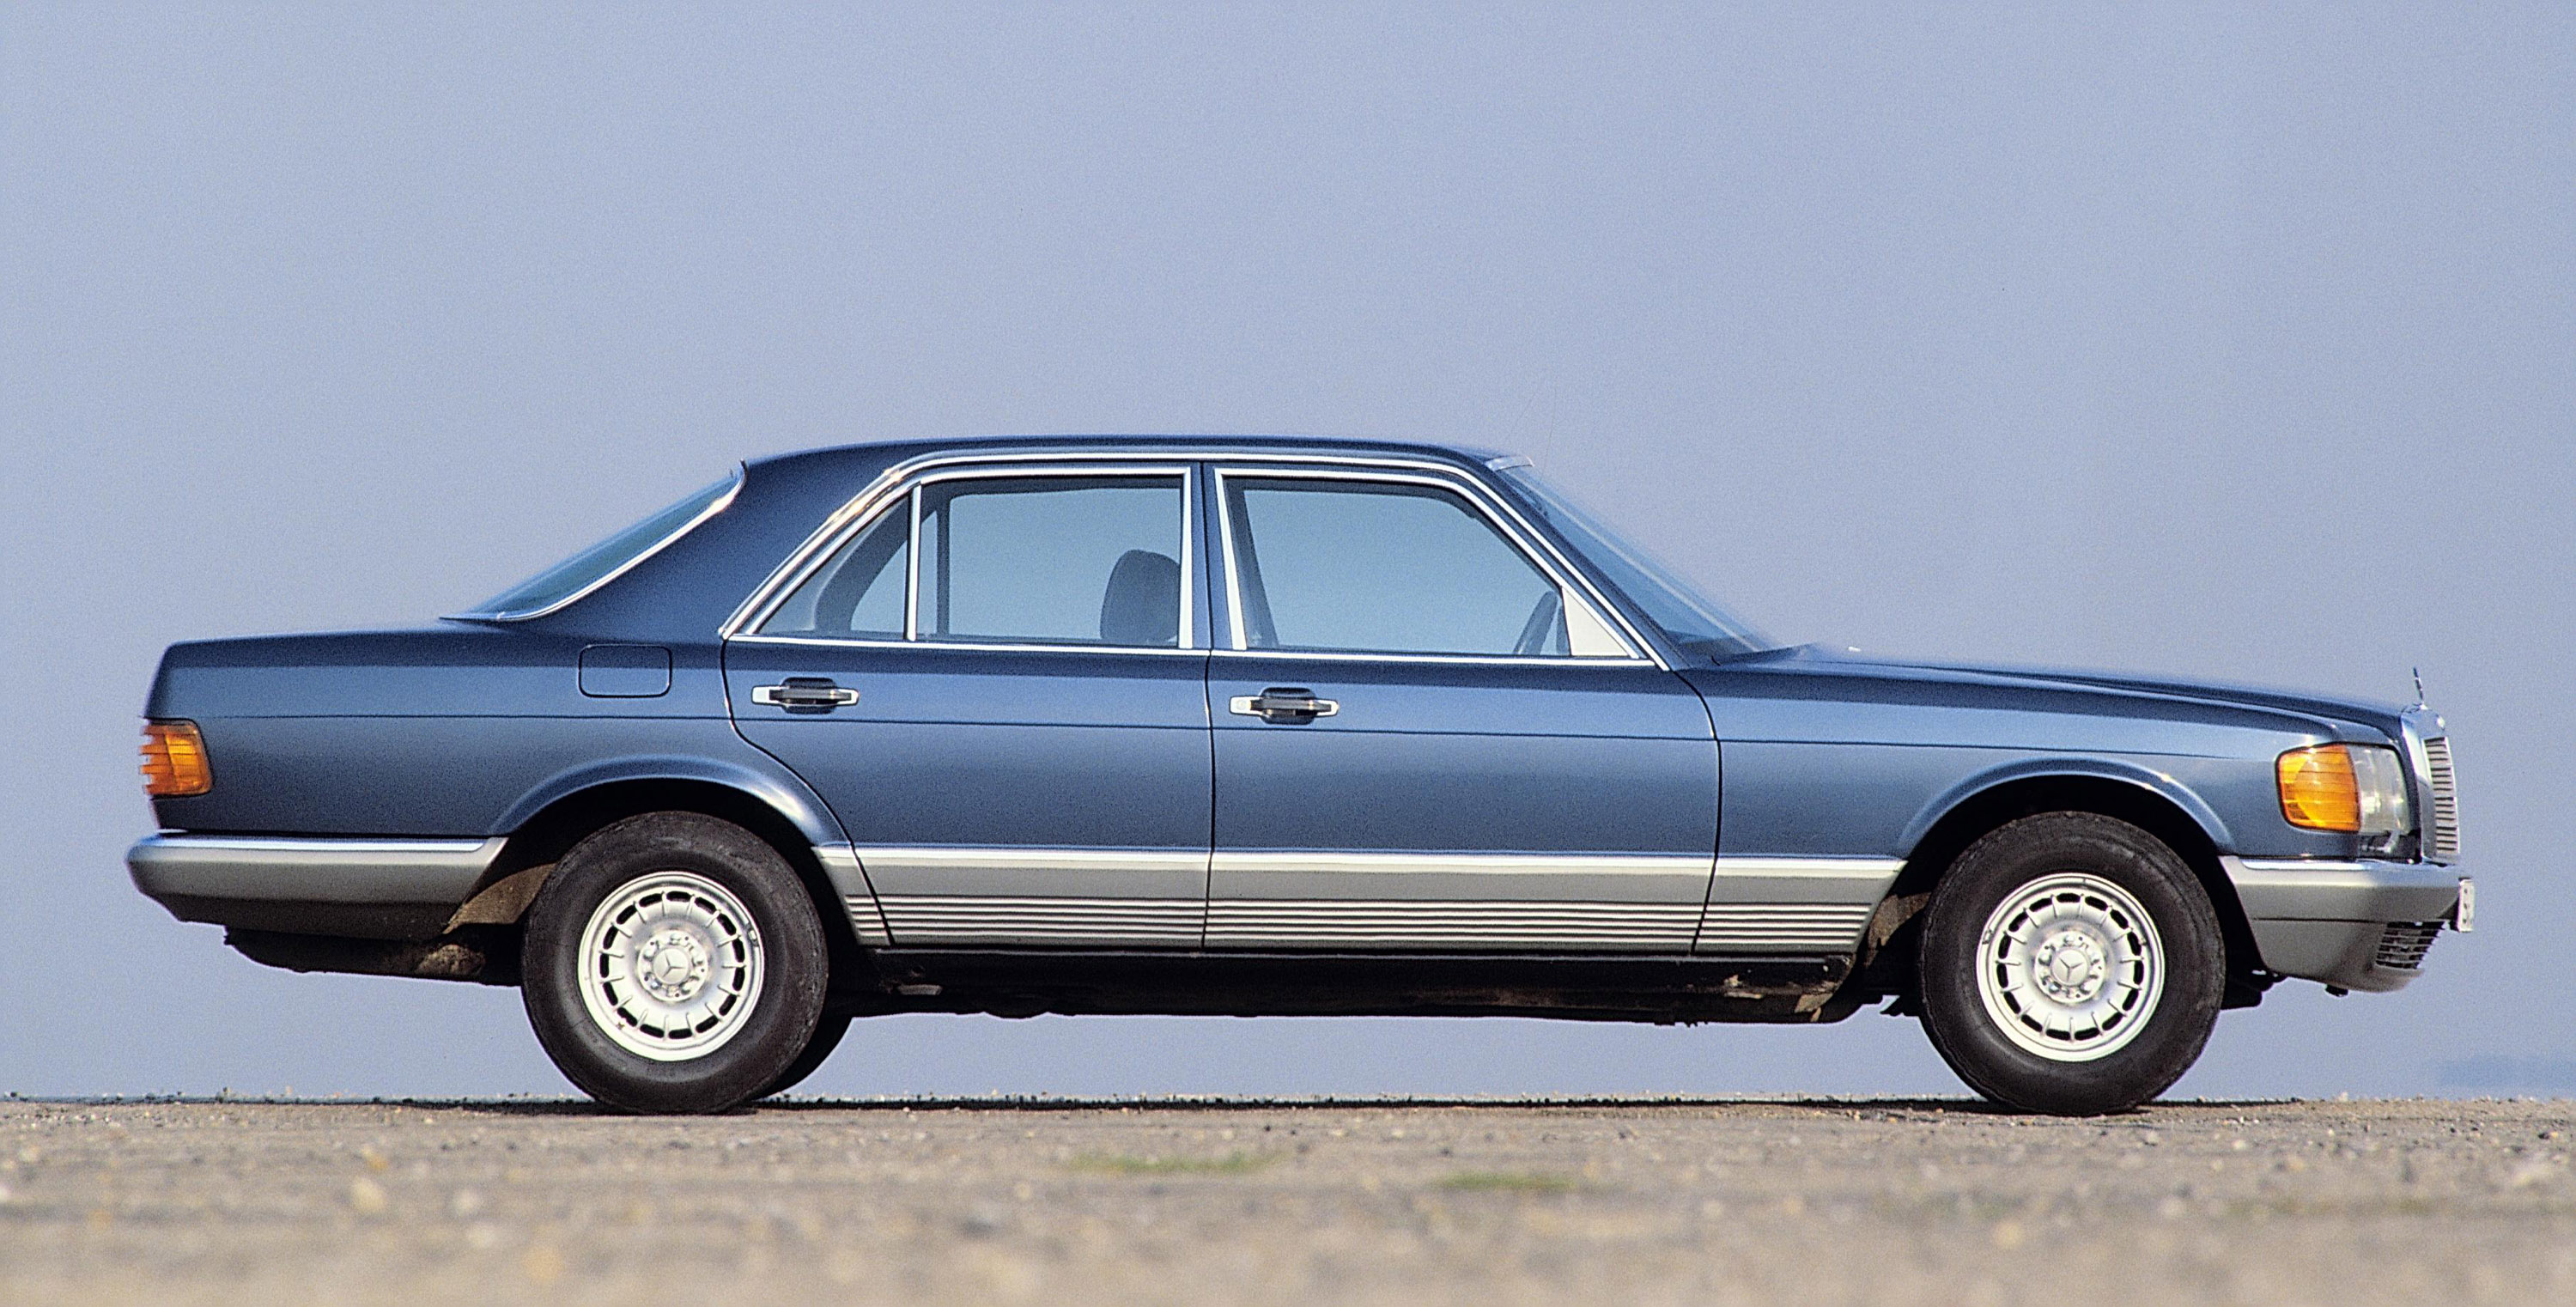 The w126 shorty se history picture thread page 4 for Mercedes benz se